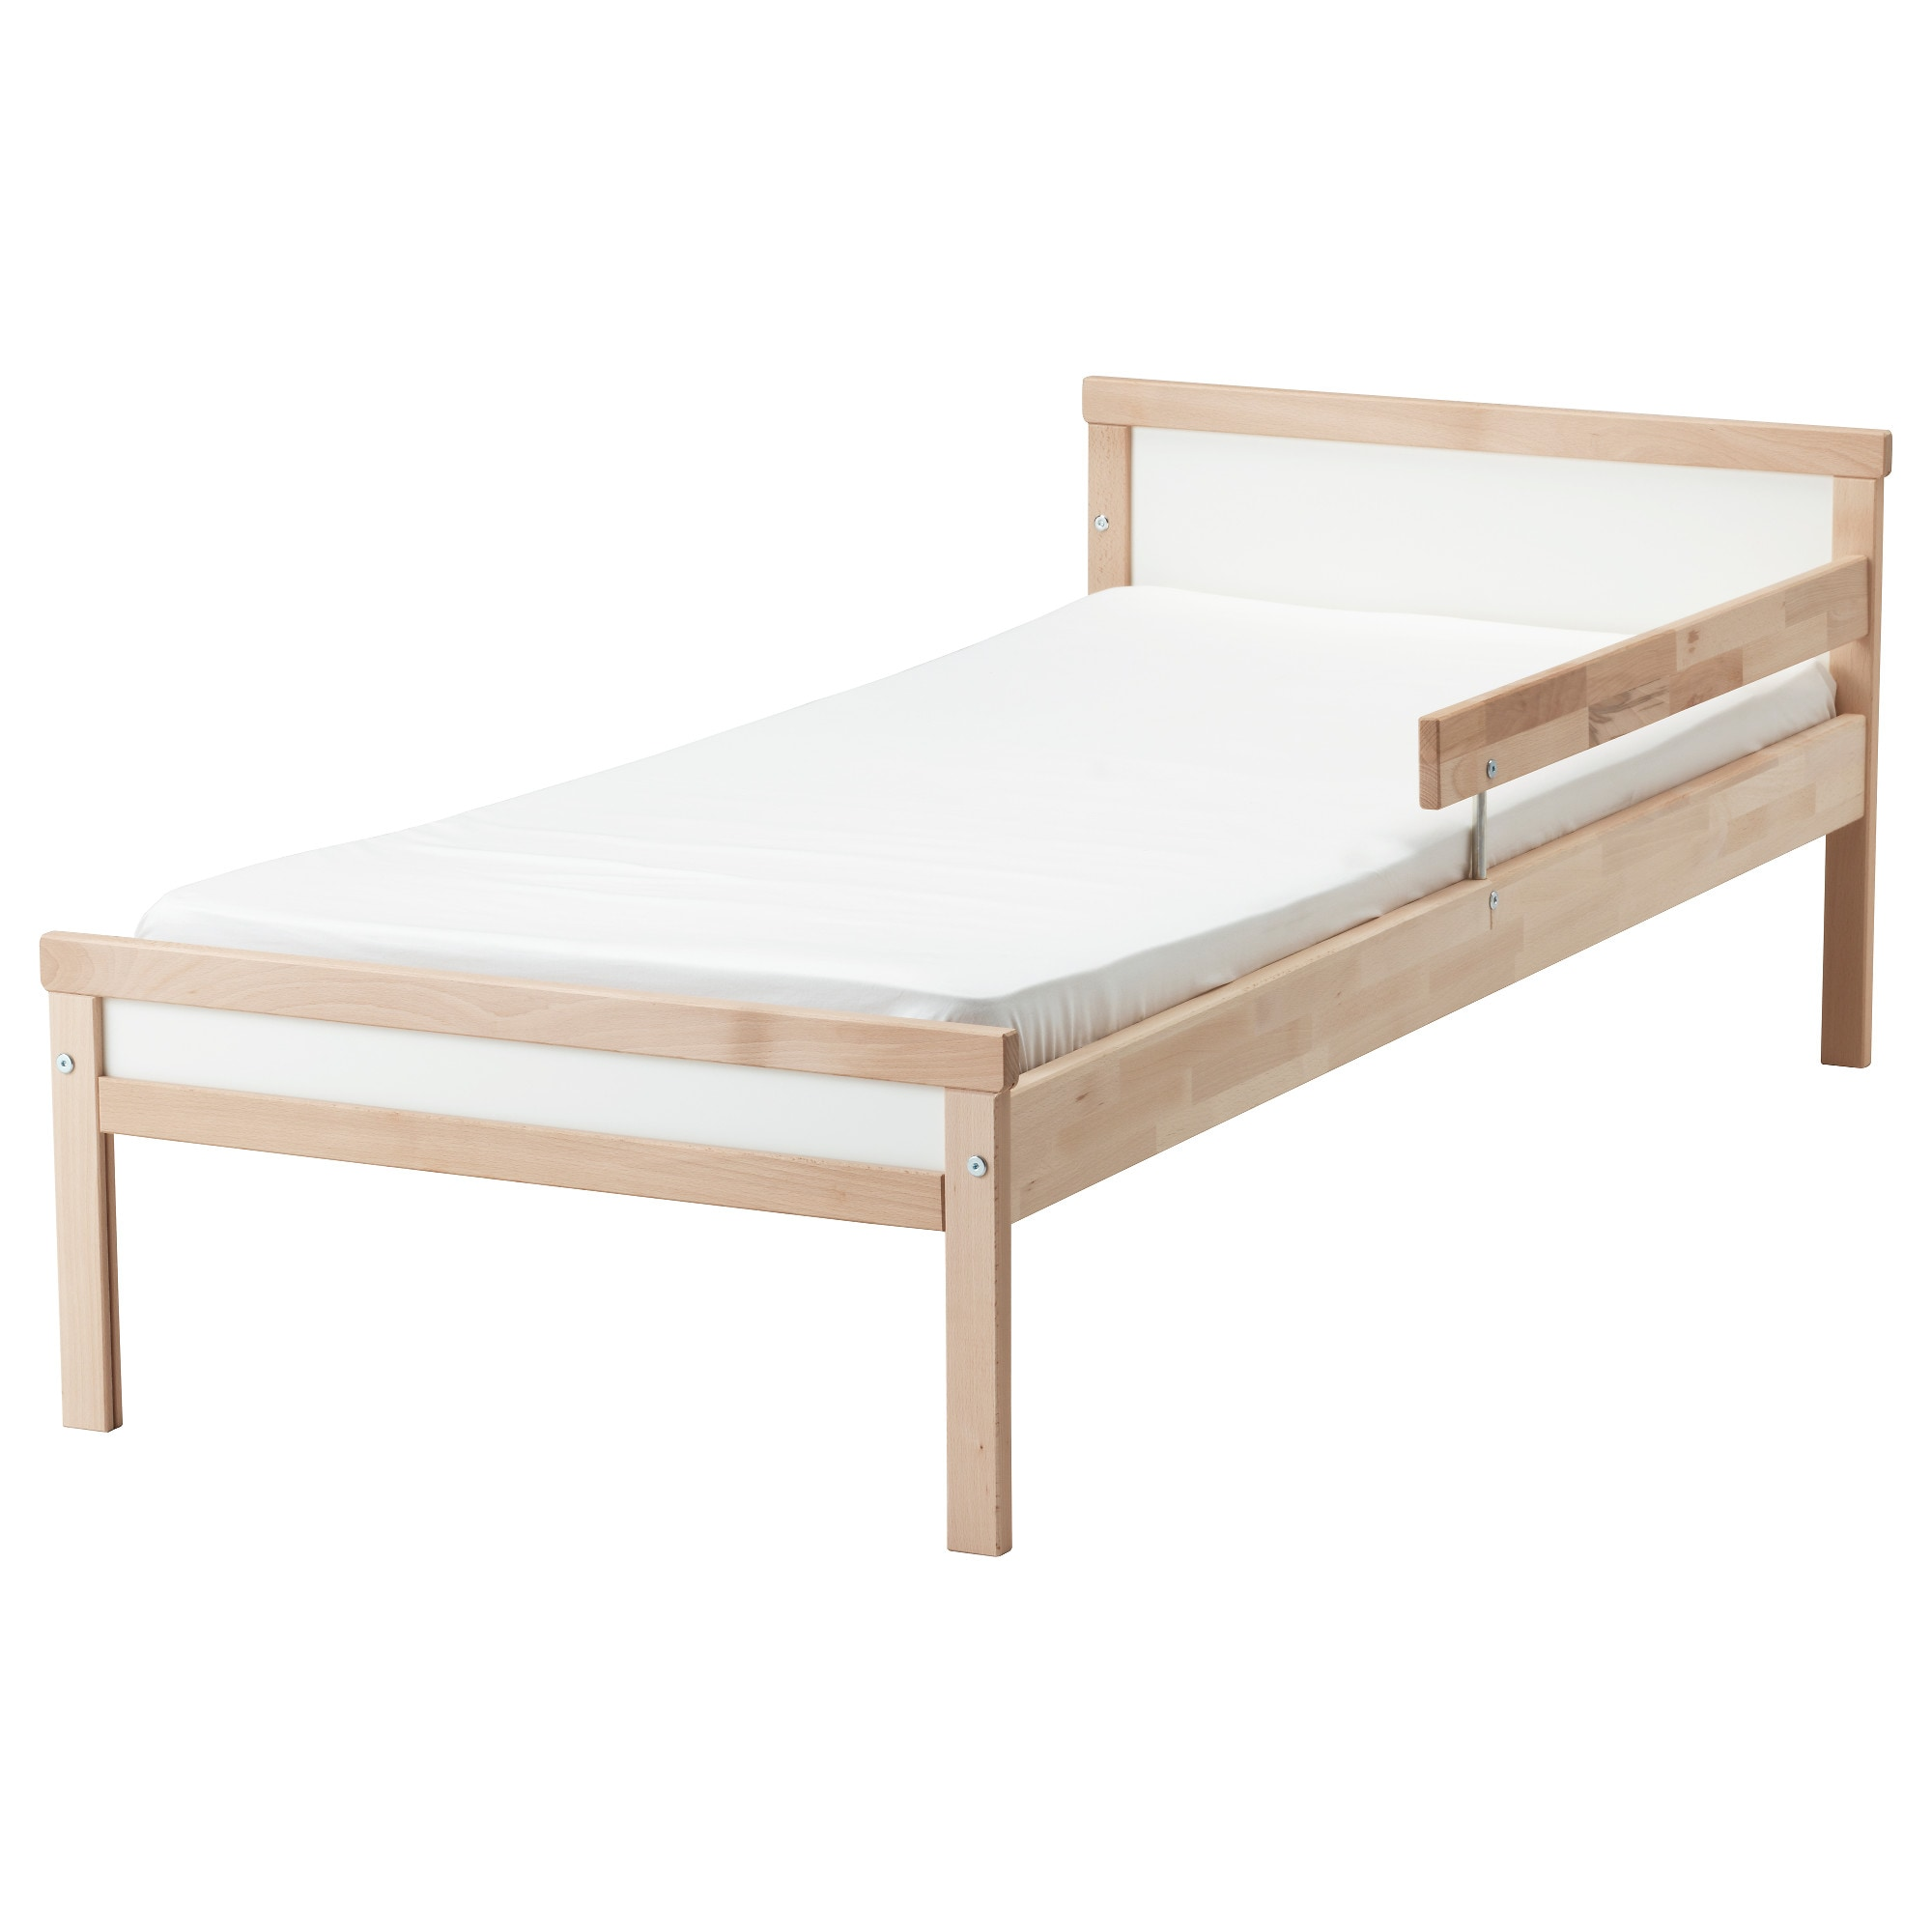 Childrens Beds childrens beds - ikea